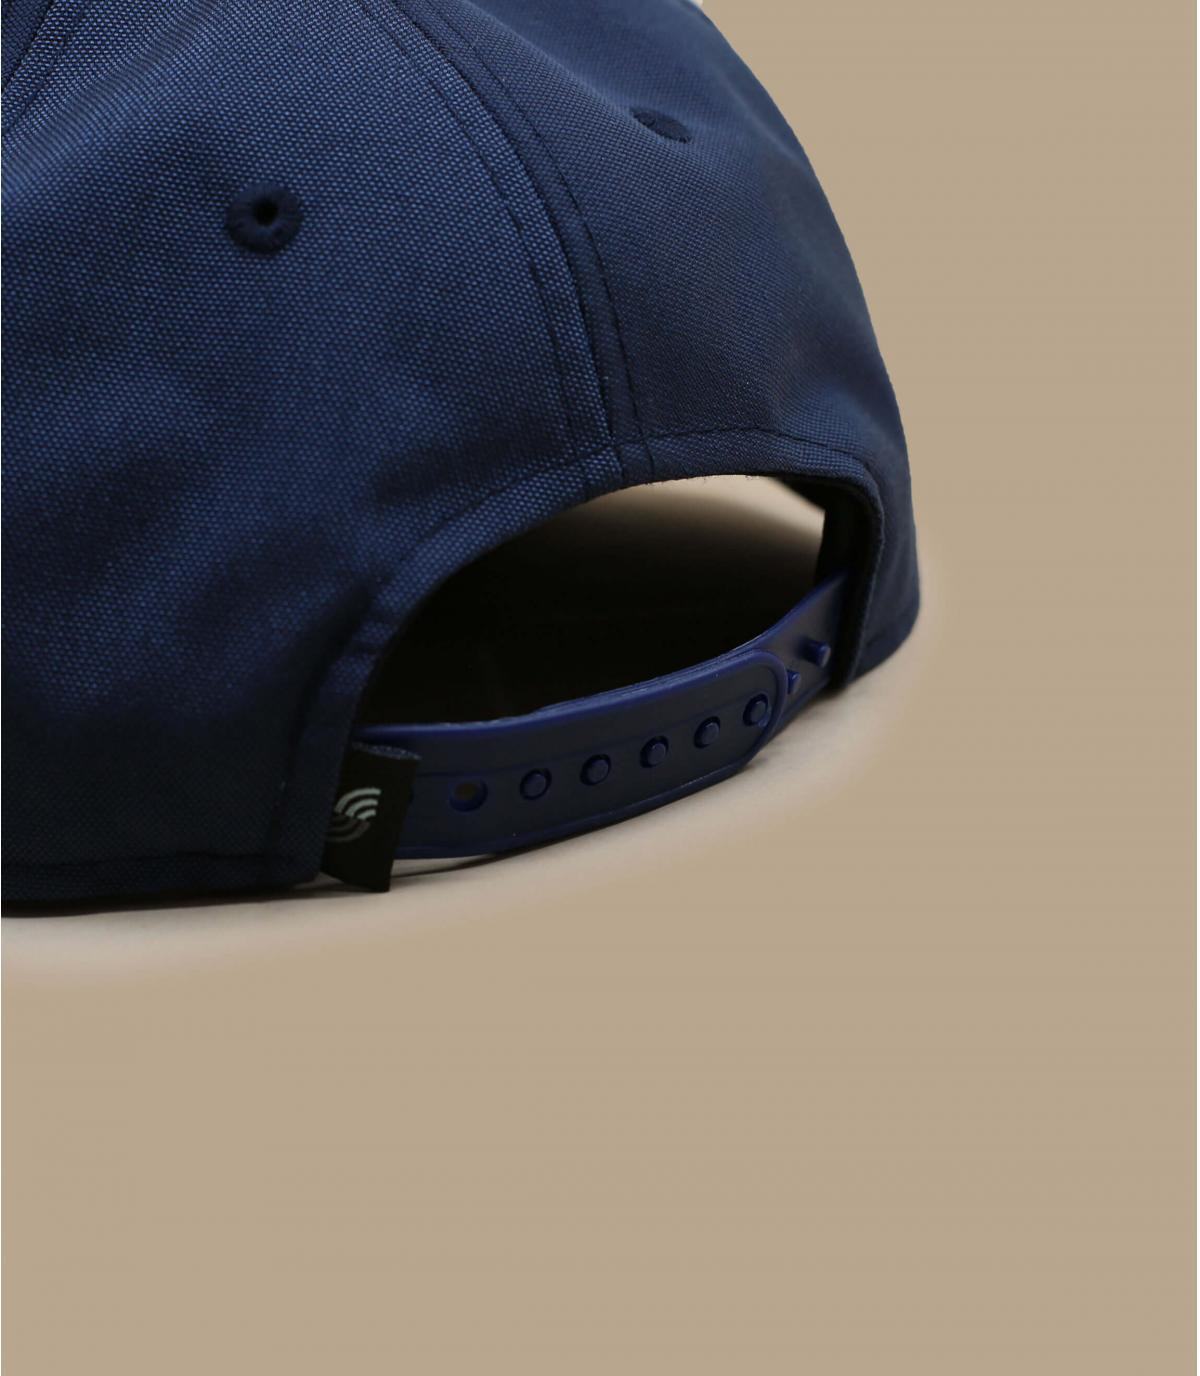 Details Snapback Recycled navy - Abbildung 4